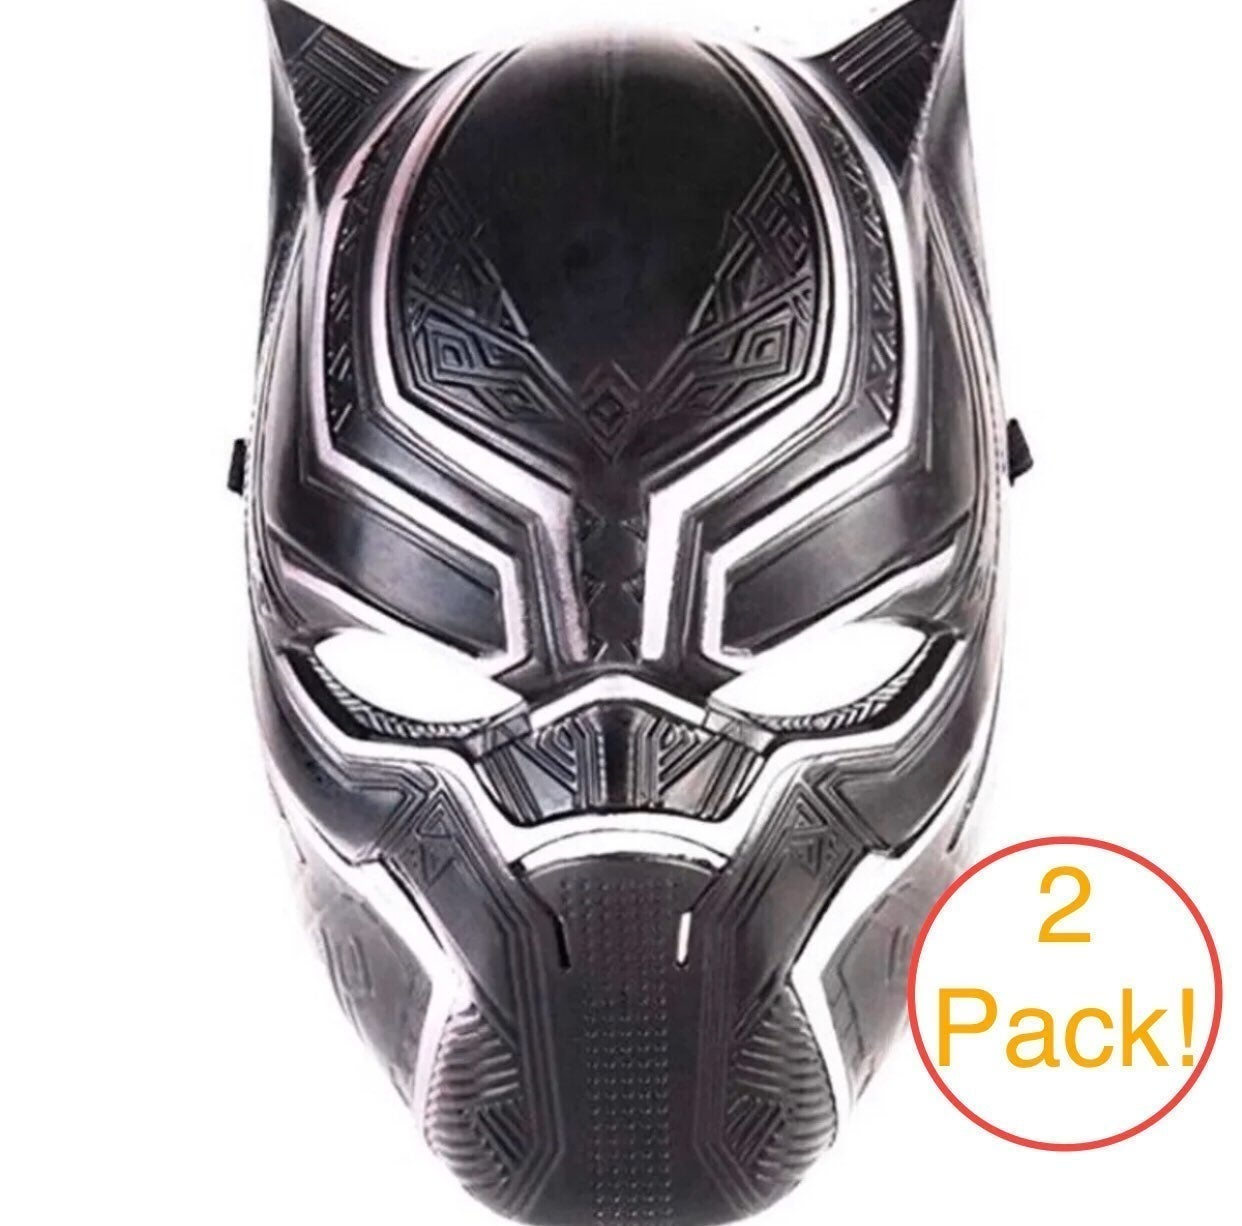 Black Panther Cosplay Paintball Mask 2pk